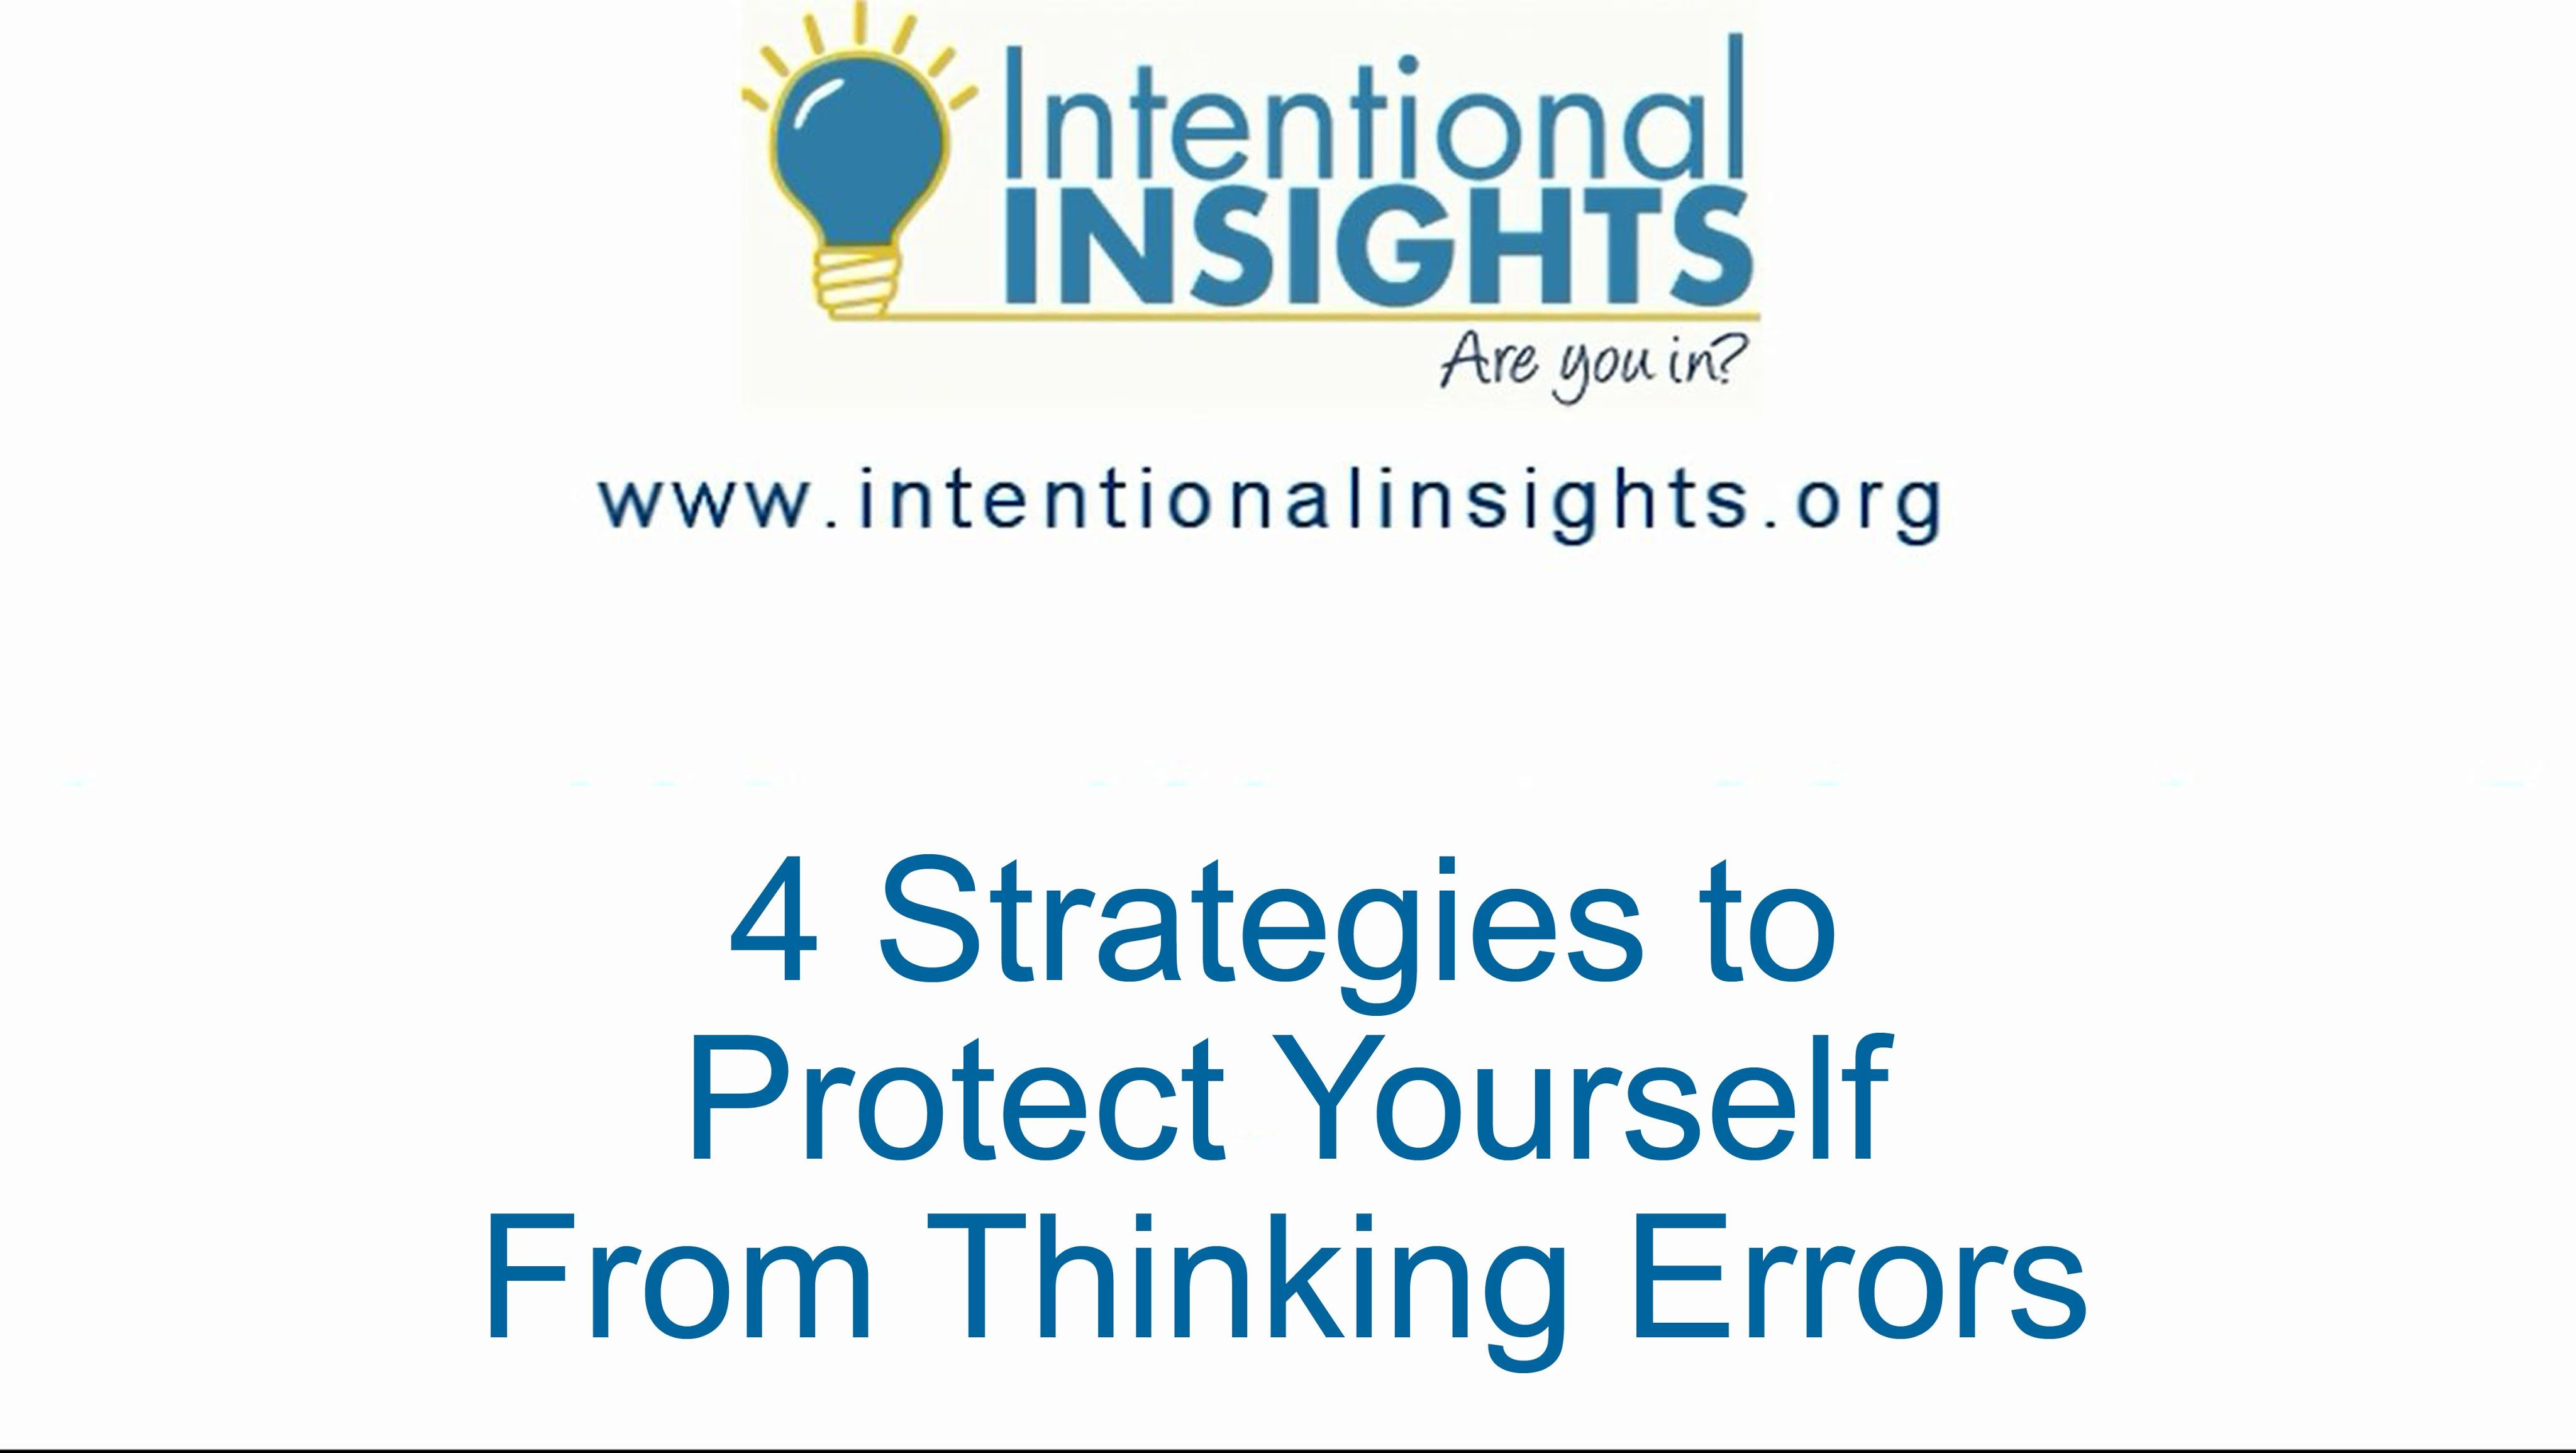 4 Strategies To Protect Yourself From Thinking Errors